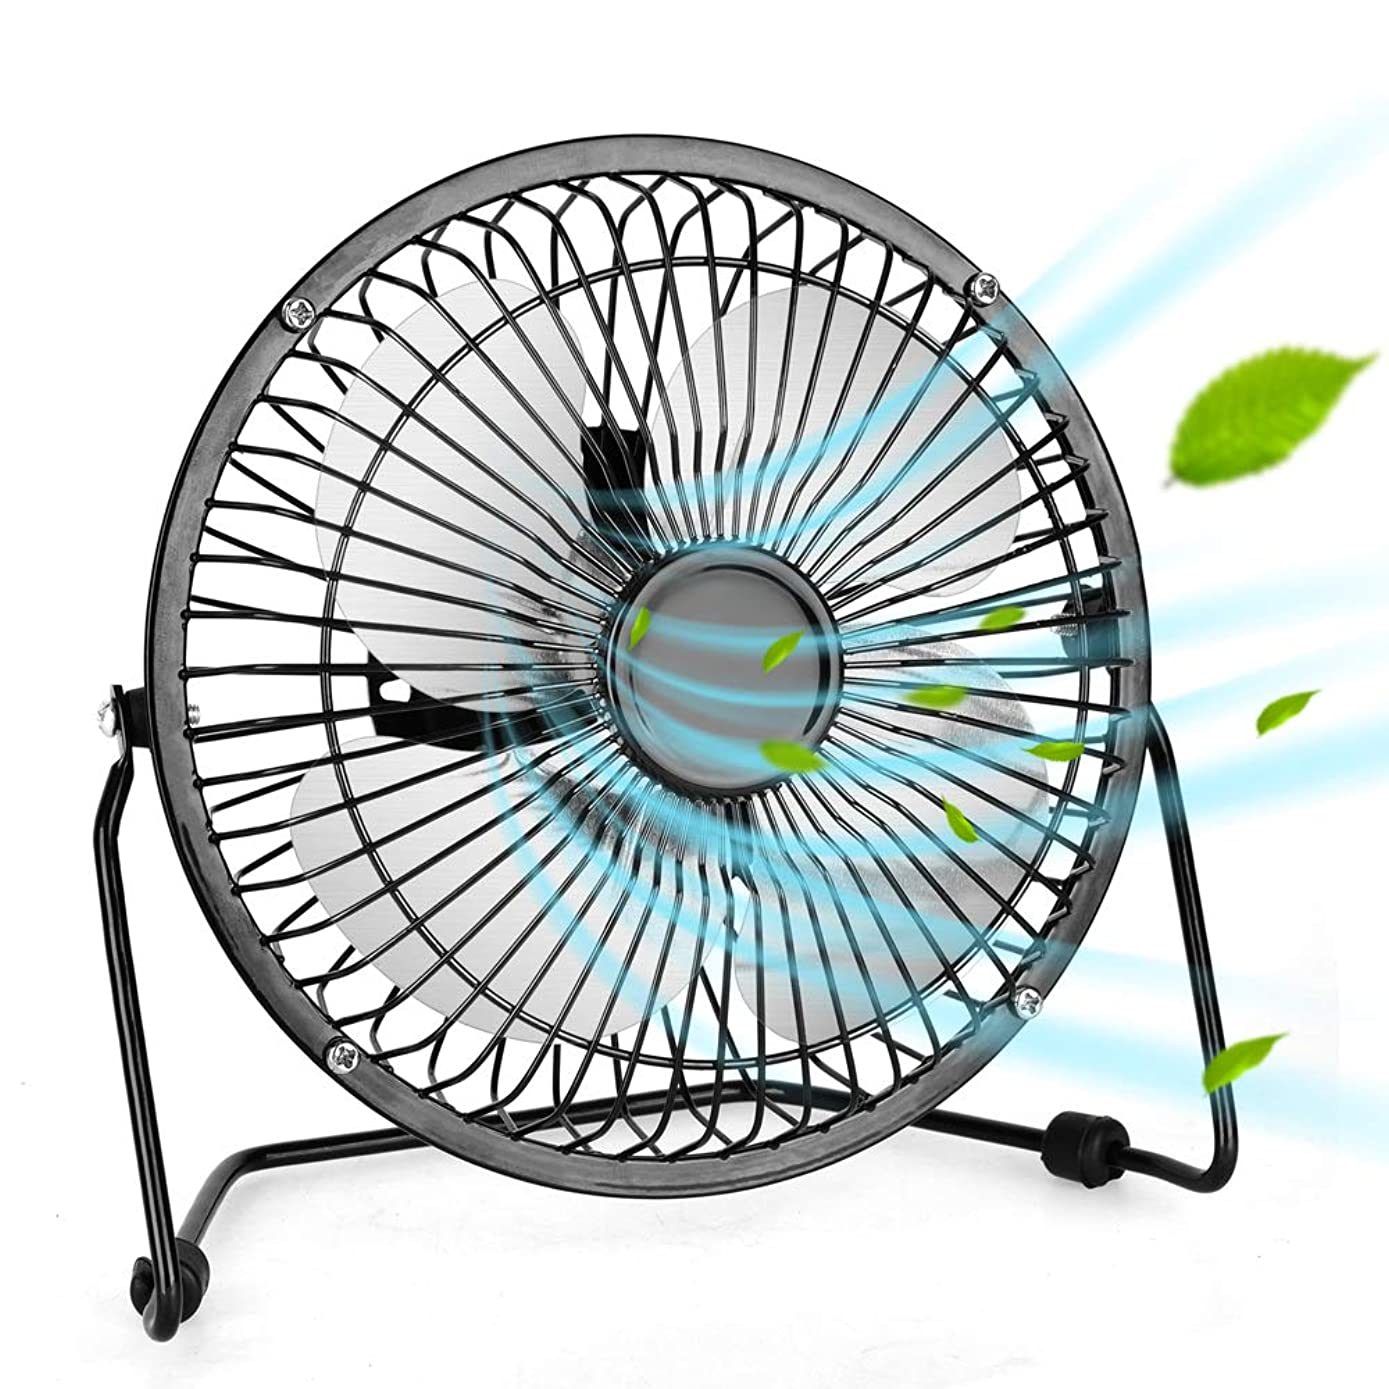 Air Choice Portable USB Fan - Mini Personal Fan With 1.4m USB Cable, 6 Inch Personal USB Fan, Quiet And Powerful, Perfect Desk Cooling Fan For Home & Office in Hot Summer Days